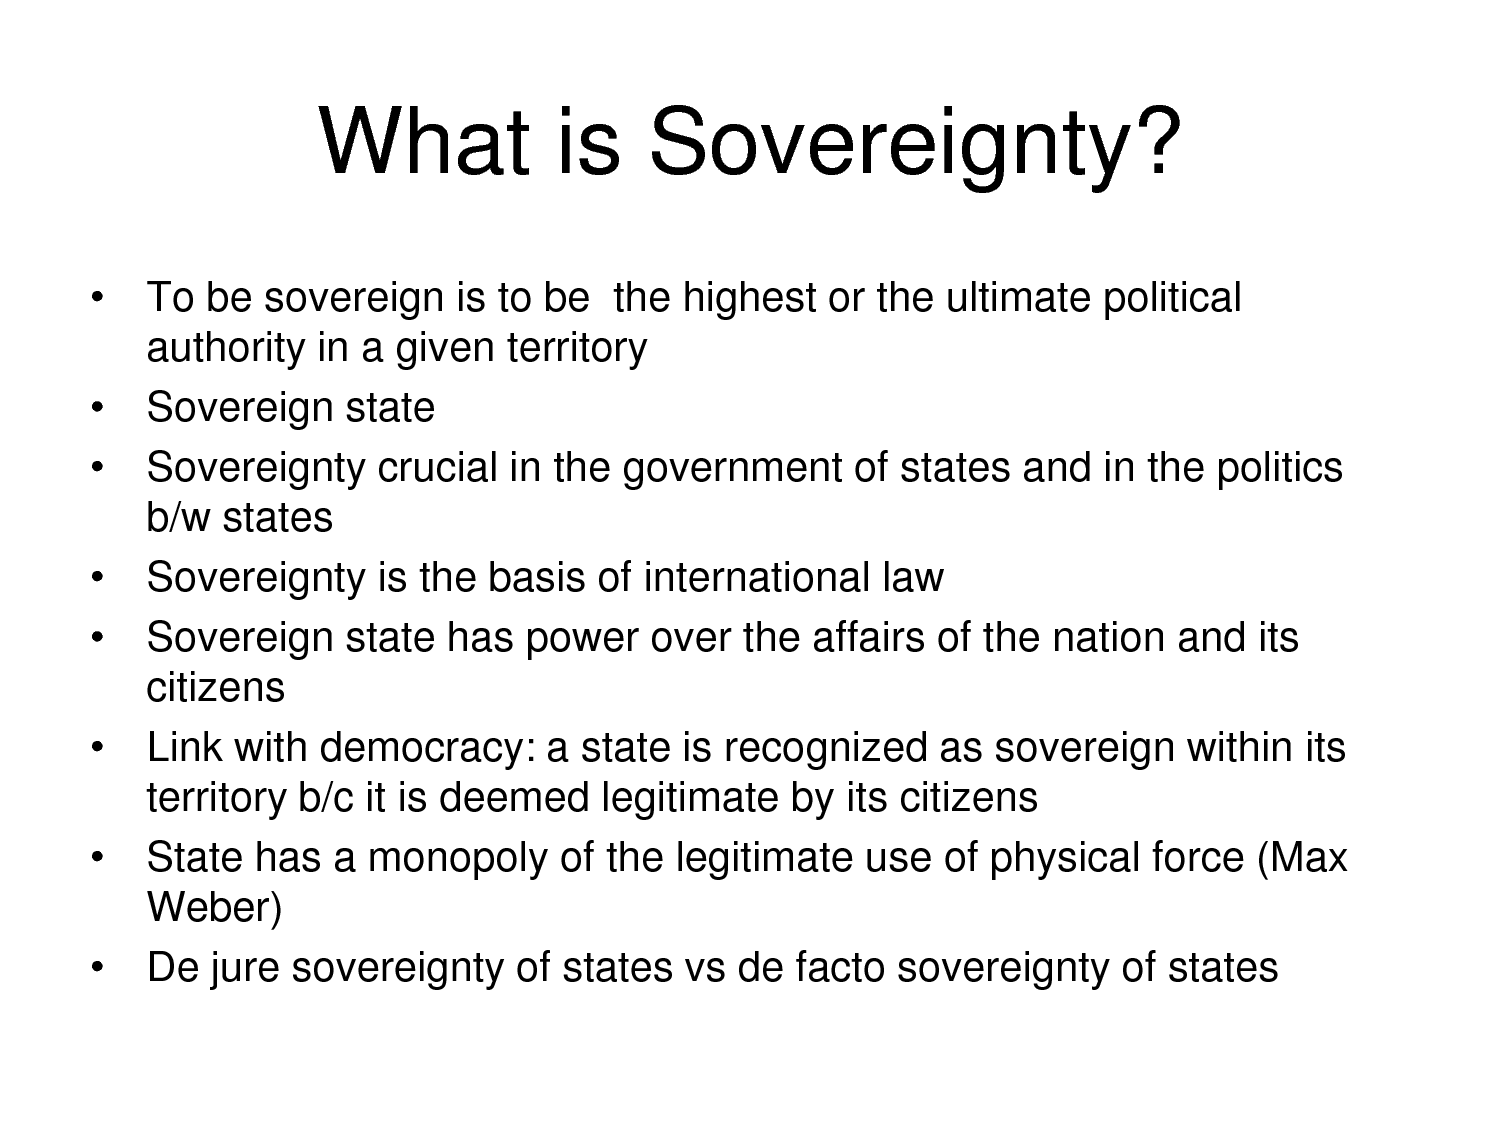 What is sovereignty 38